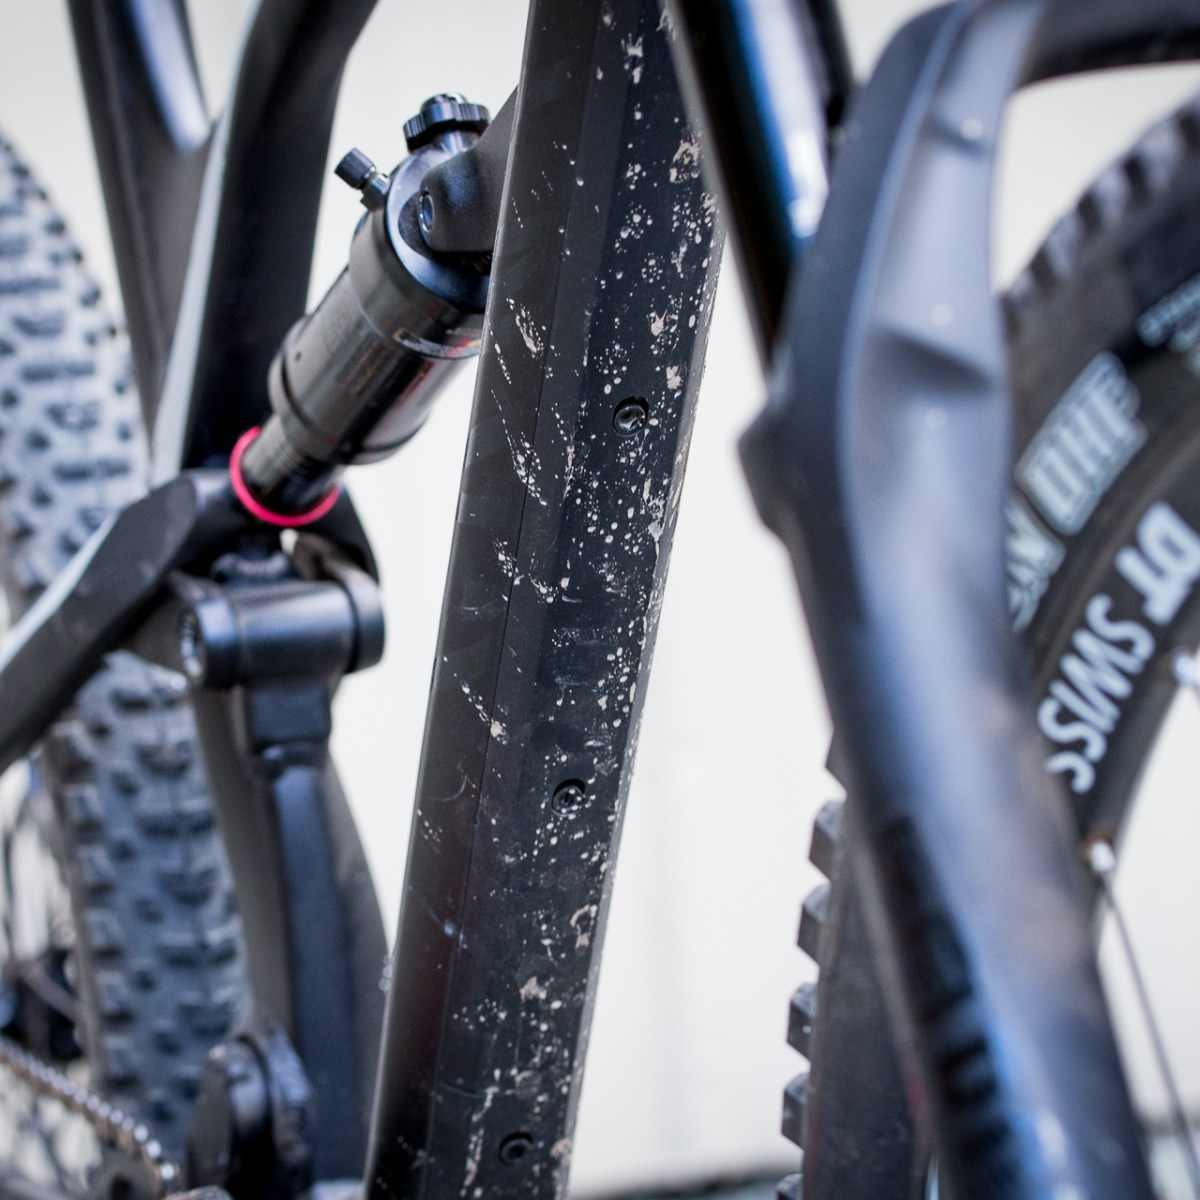 Tested: Canyon Spectral AL 6 0 Aggressive Trail Mountain